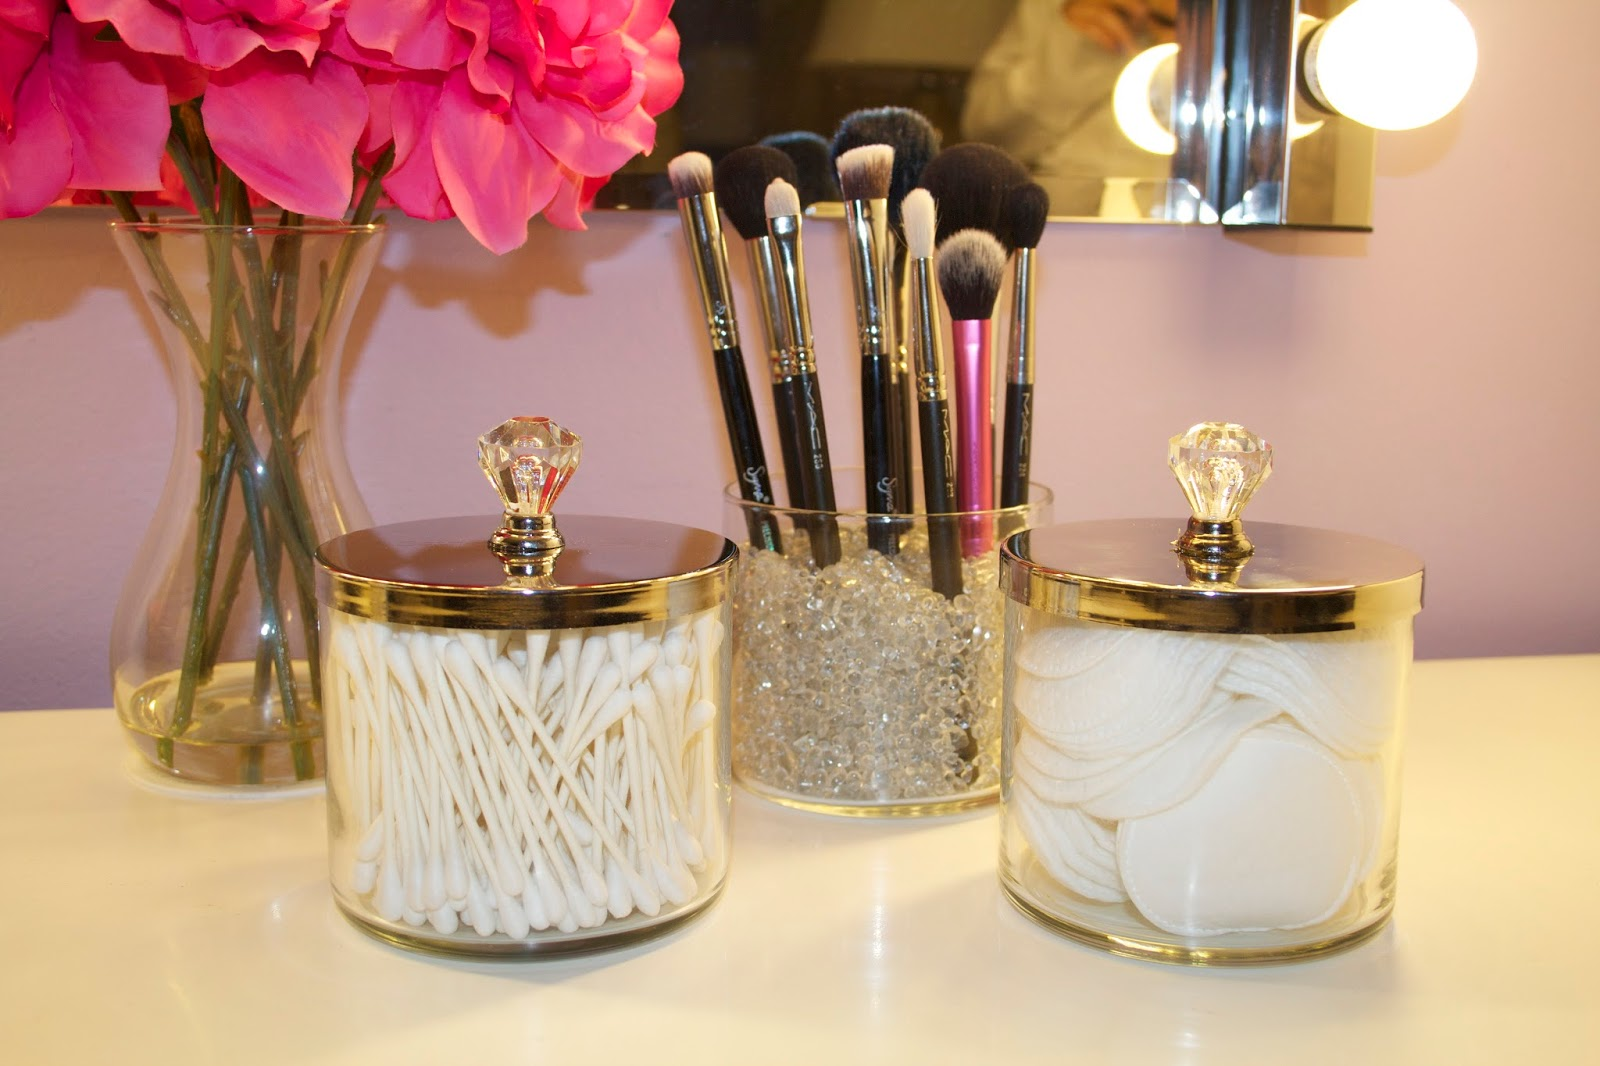 18 Clever Ideas For Organizing Your Makeup